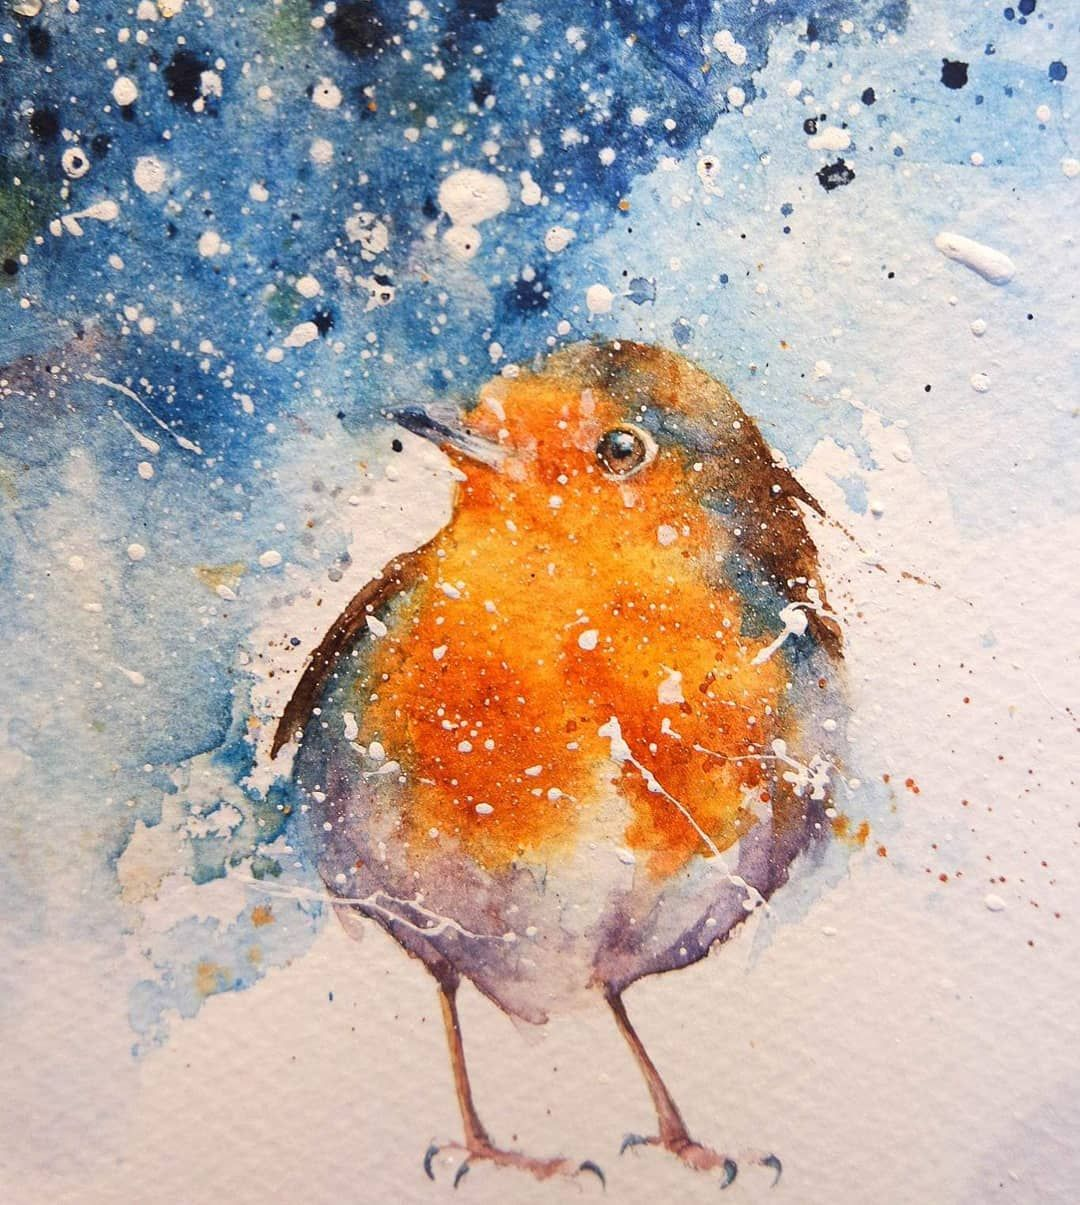 Bird Watercolor Paintings Image By Sasha Ciuffini On Tats